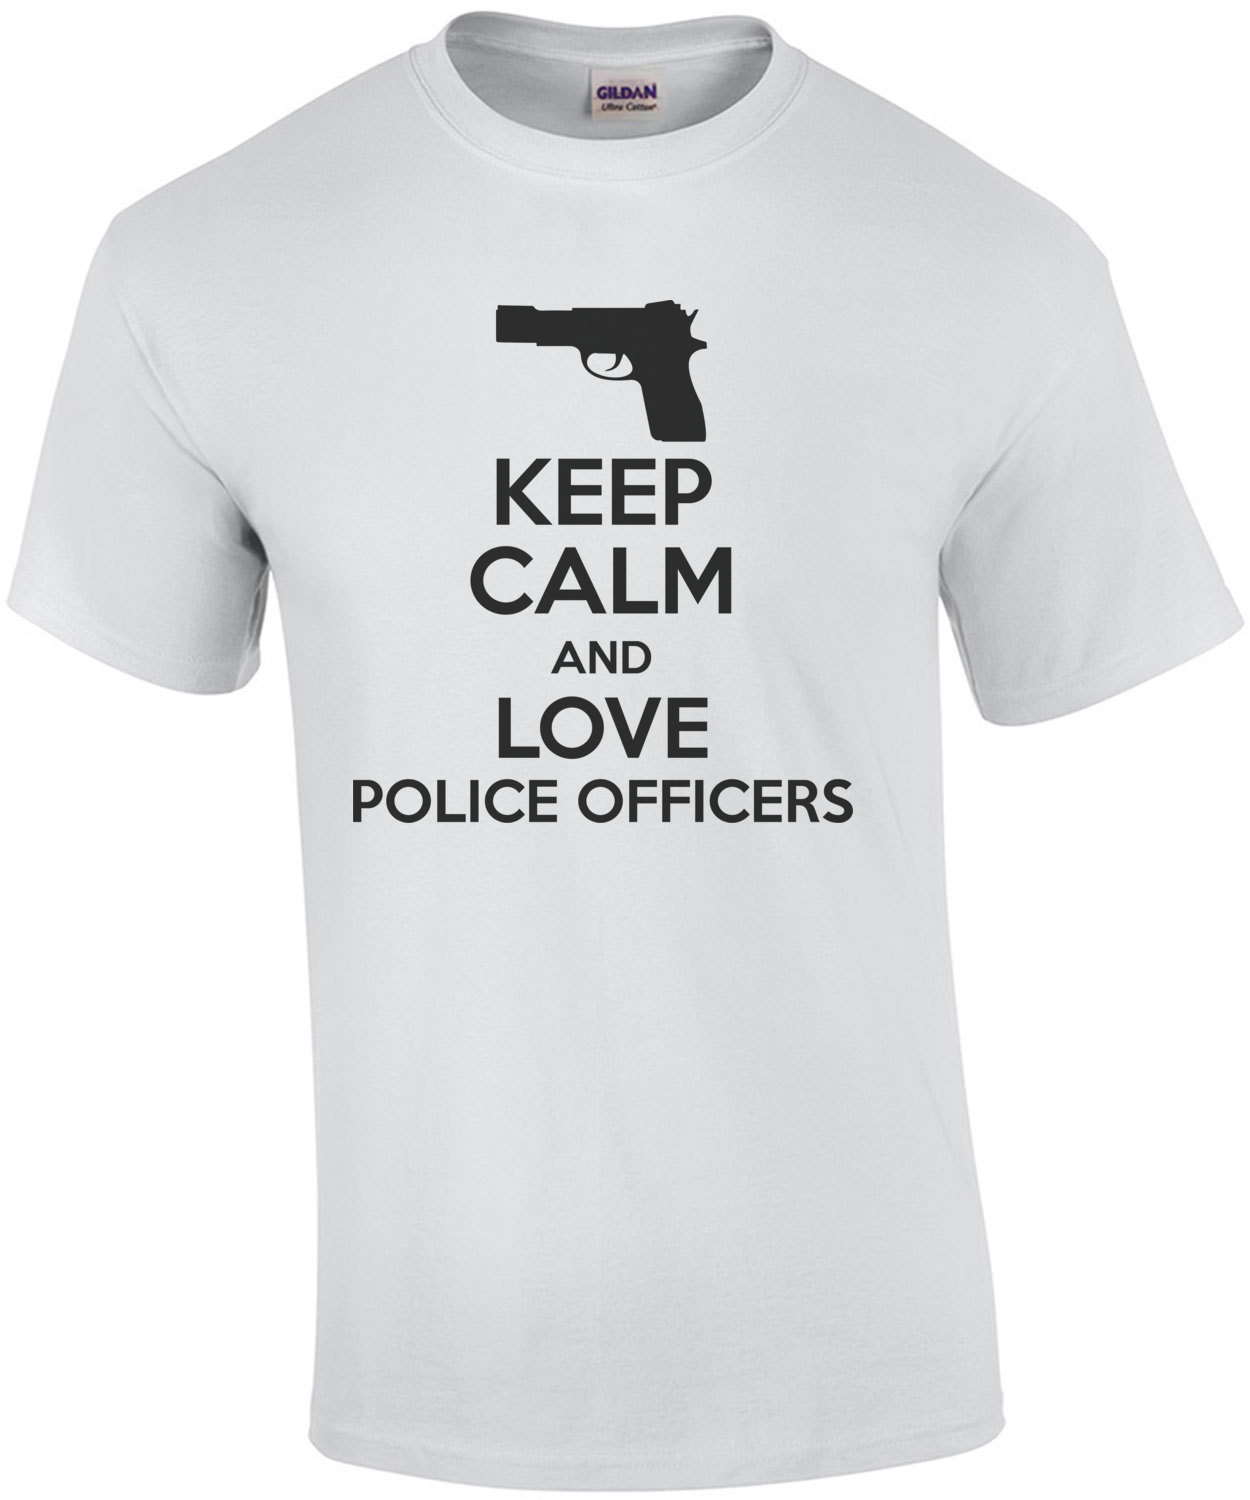 Funny T-shirt KEEP CALM I AM A POLICEMAN police officer security